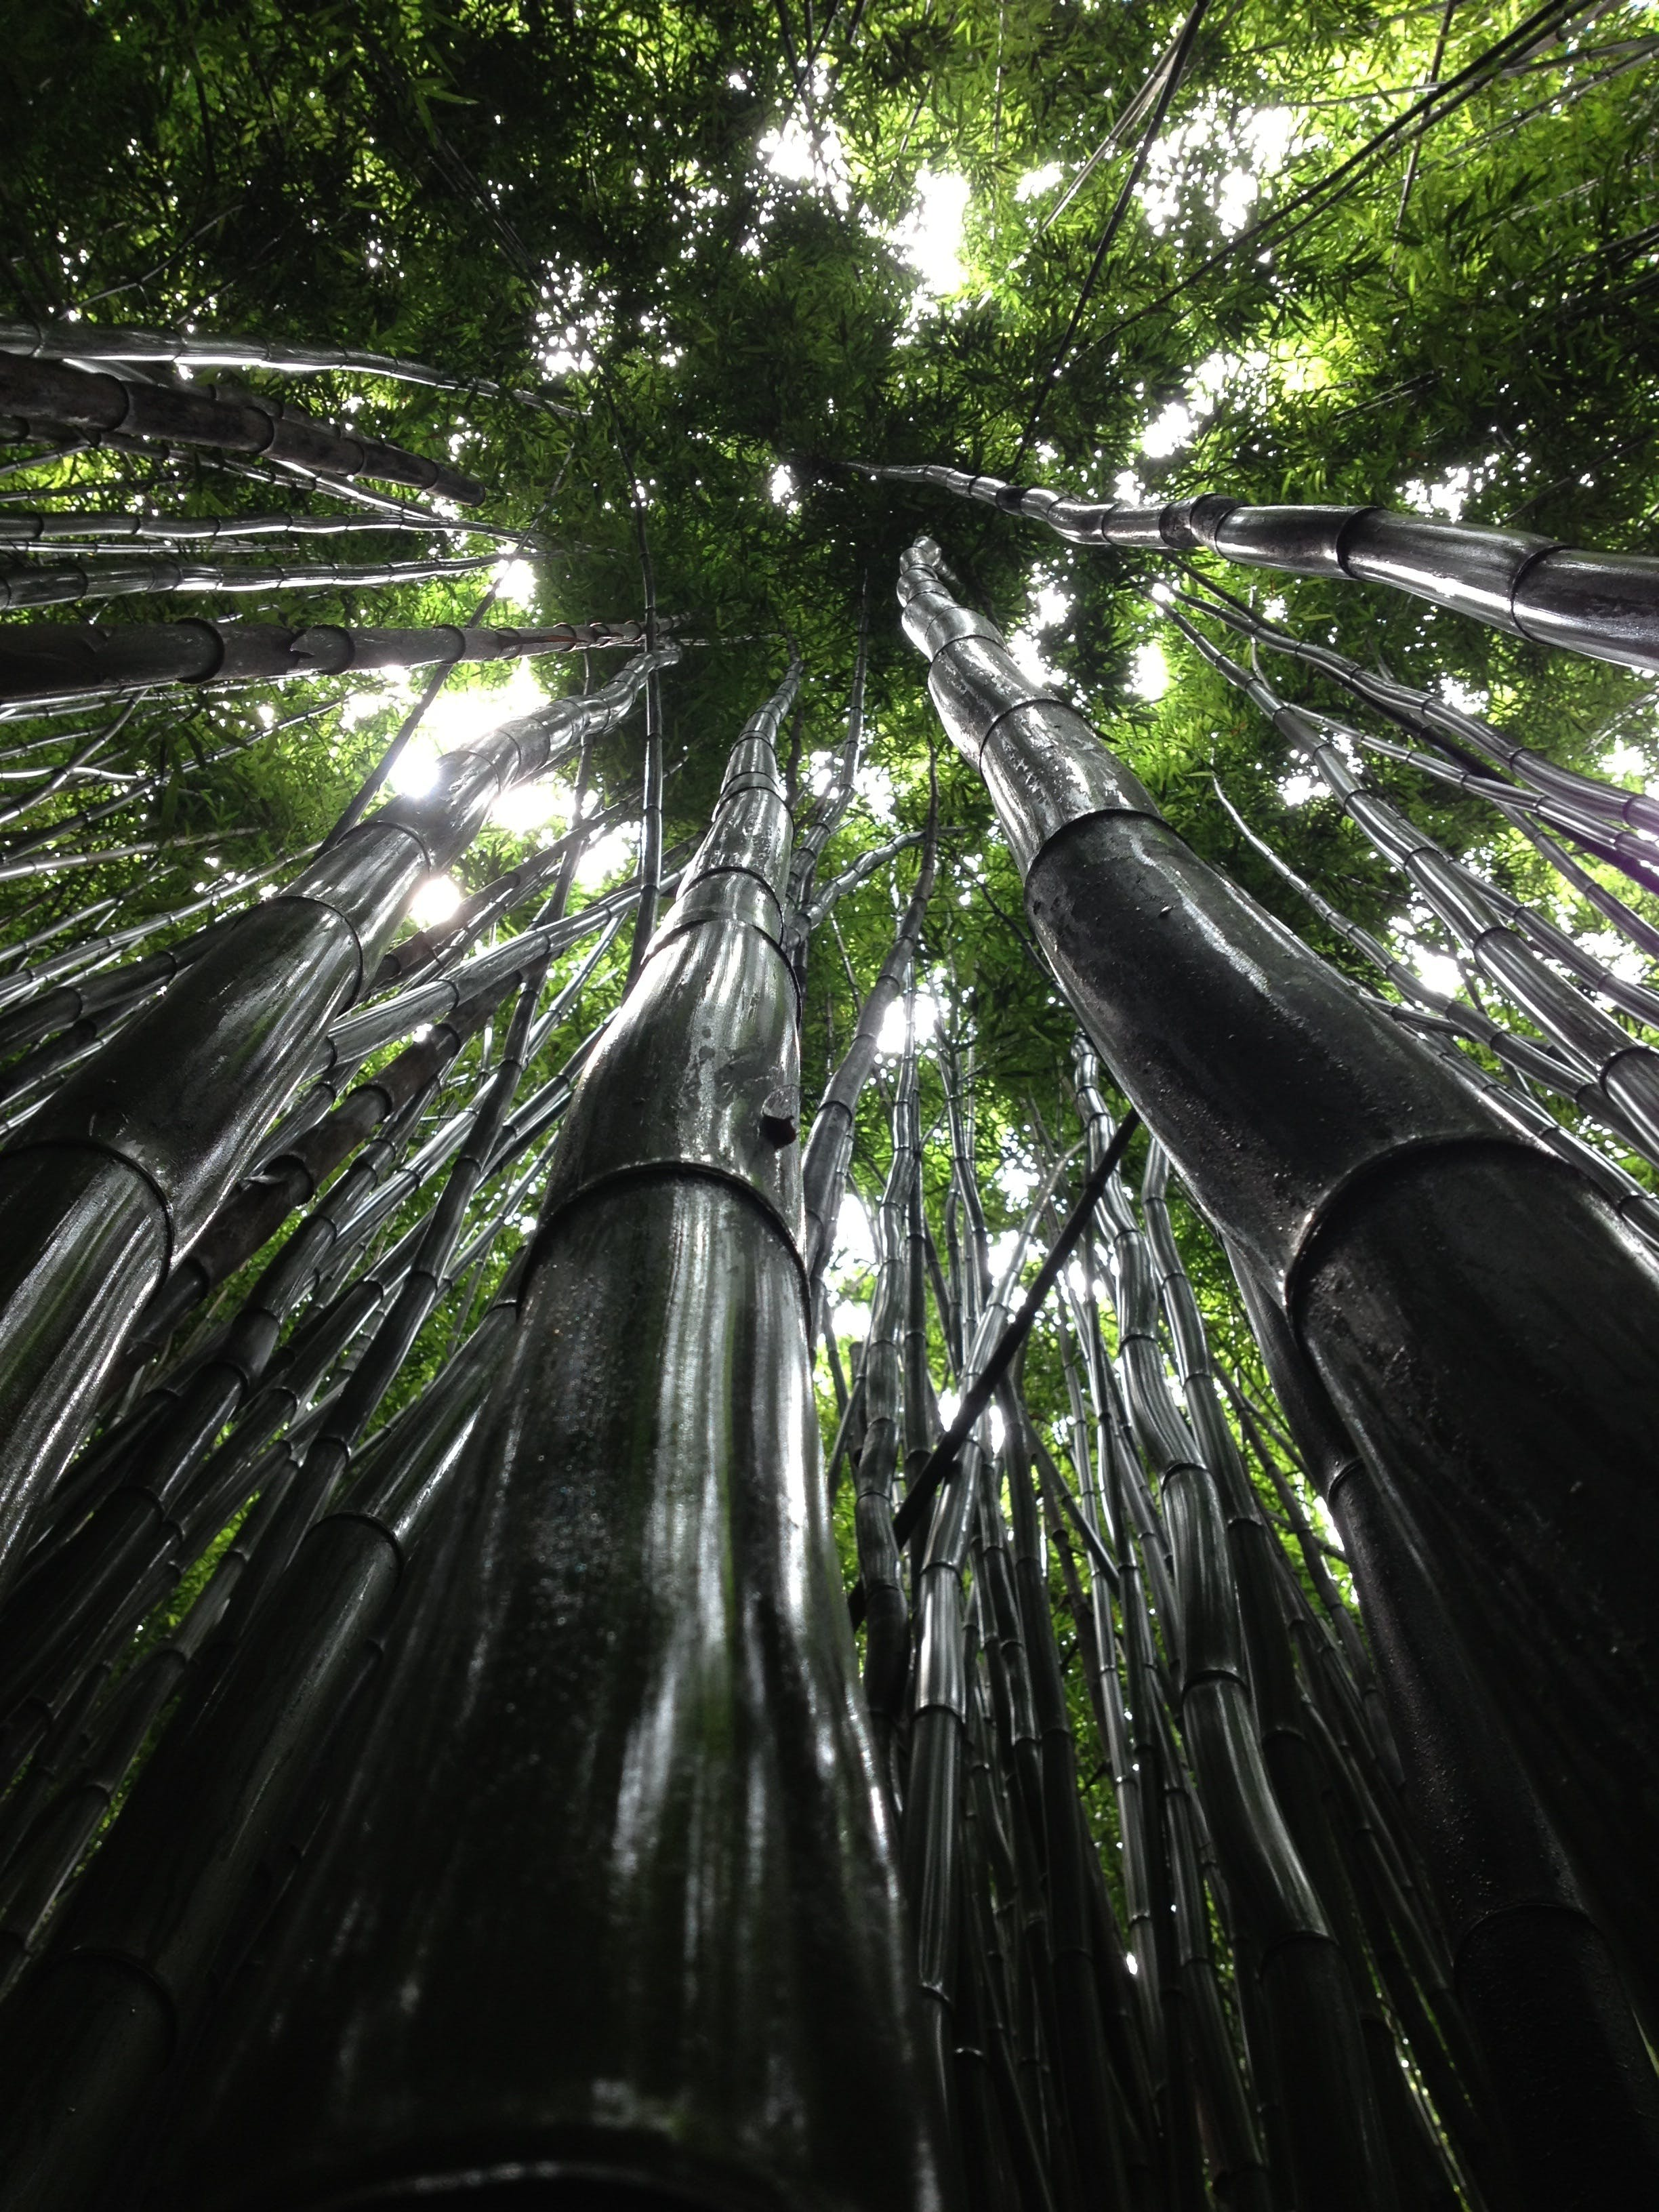 Under View Photo of Bamboo Trunks during Daytime